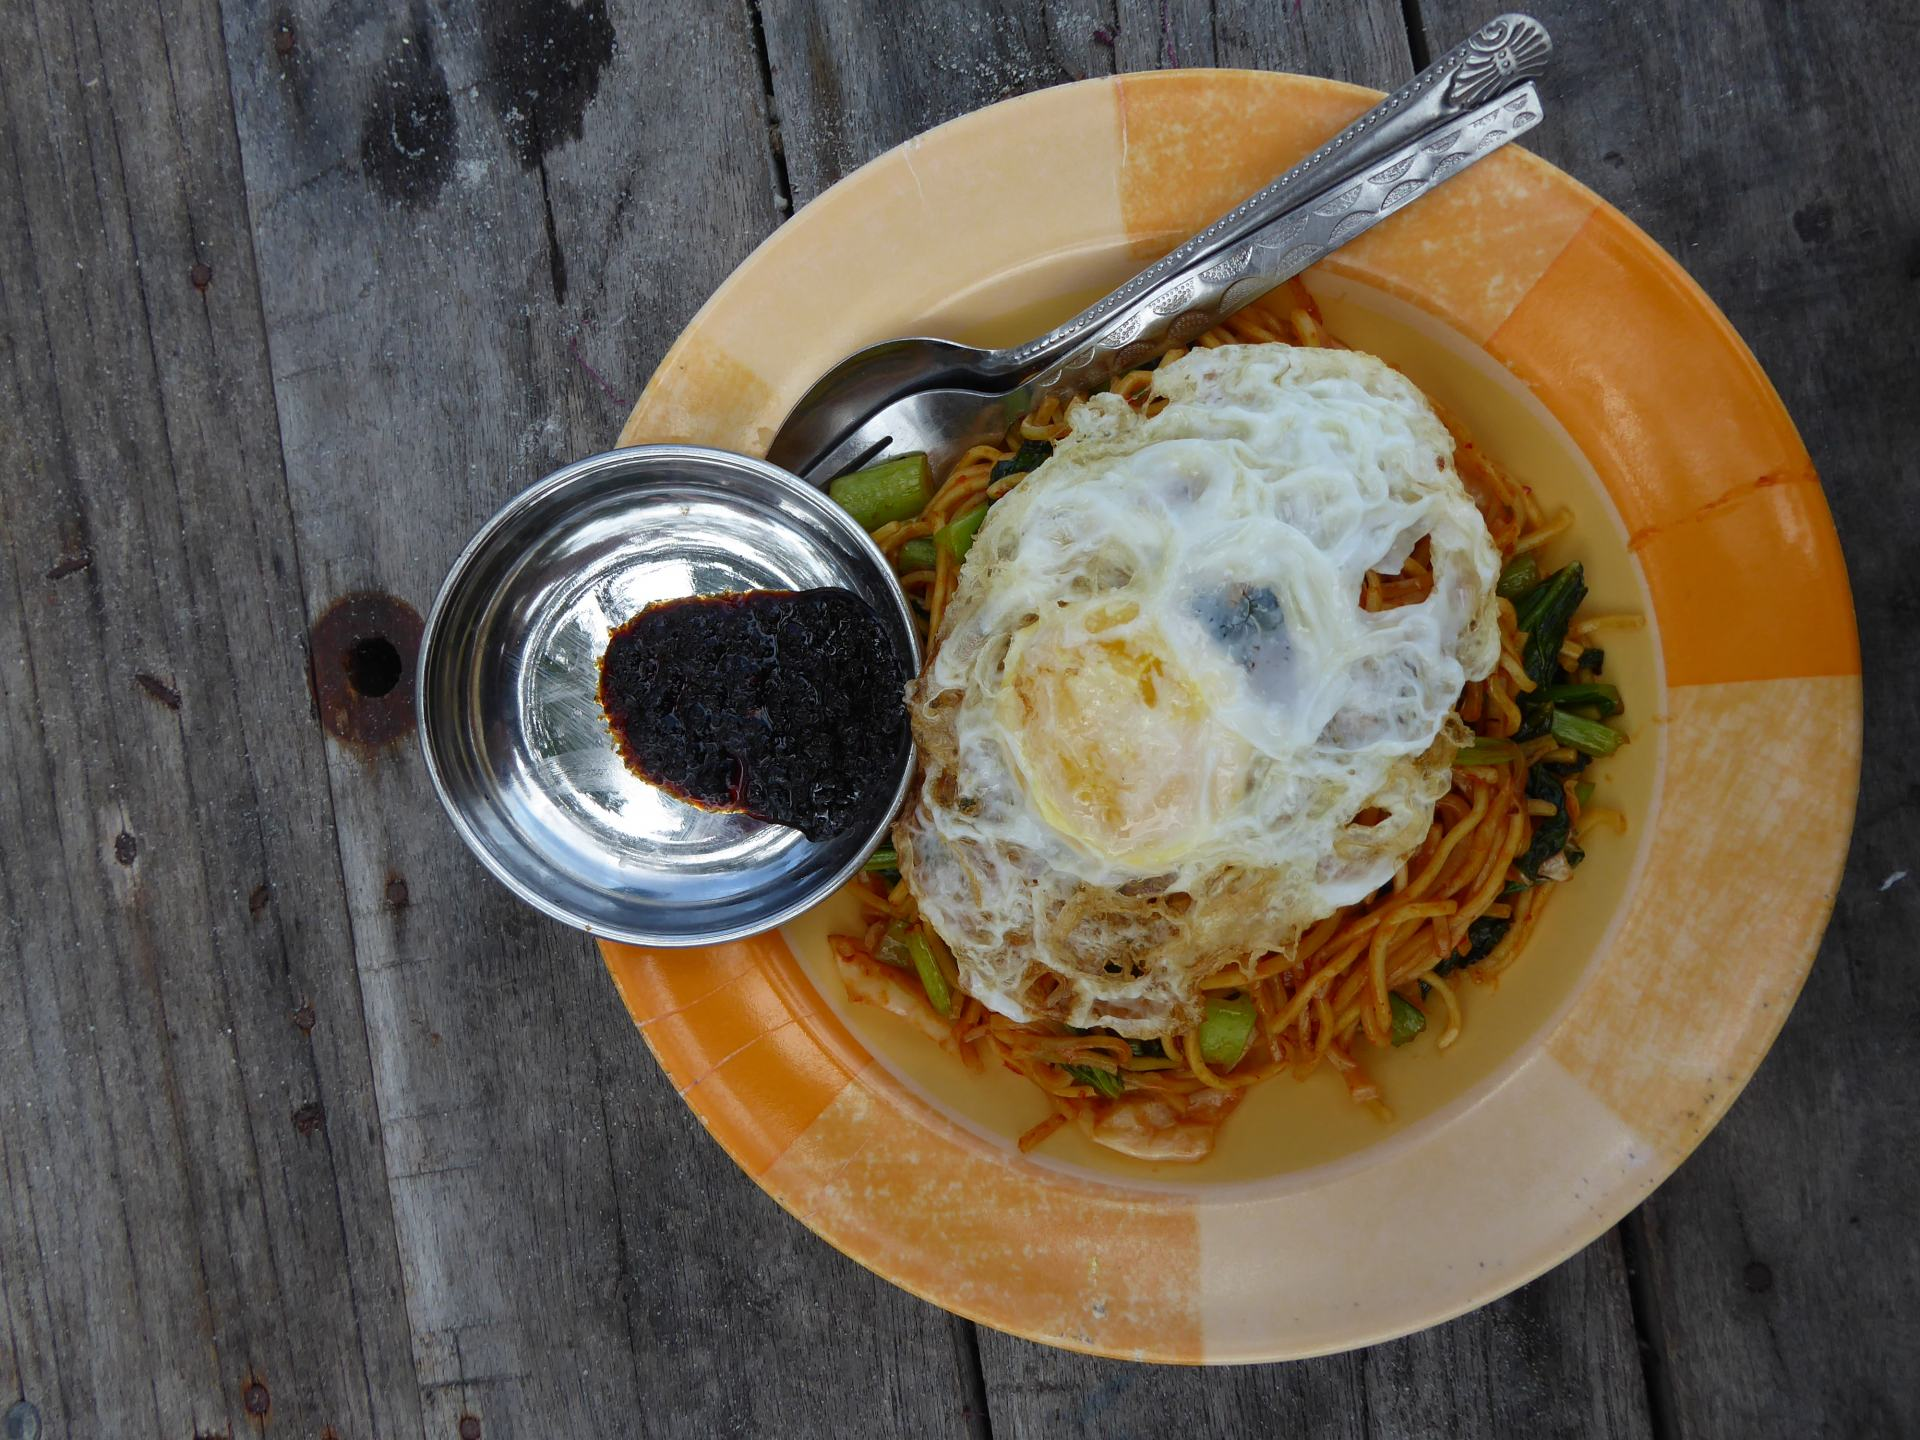 A plate containing Mee Goreng with fried egg, Including a small metal pot with chilli spice